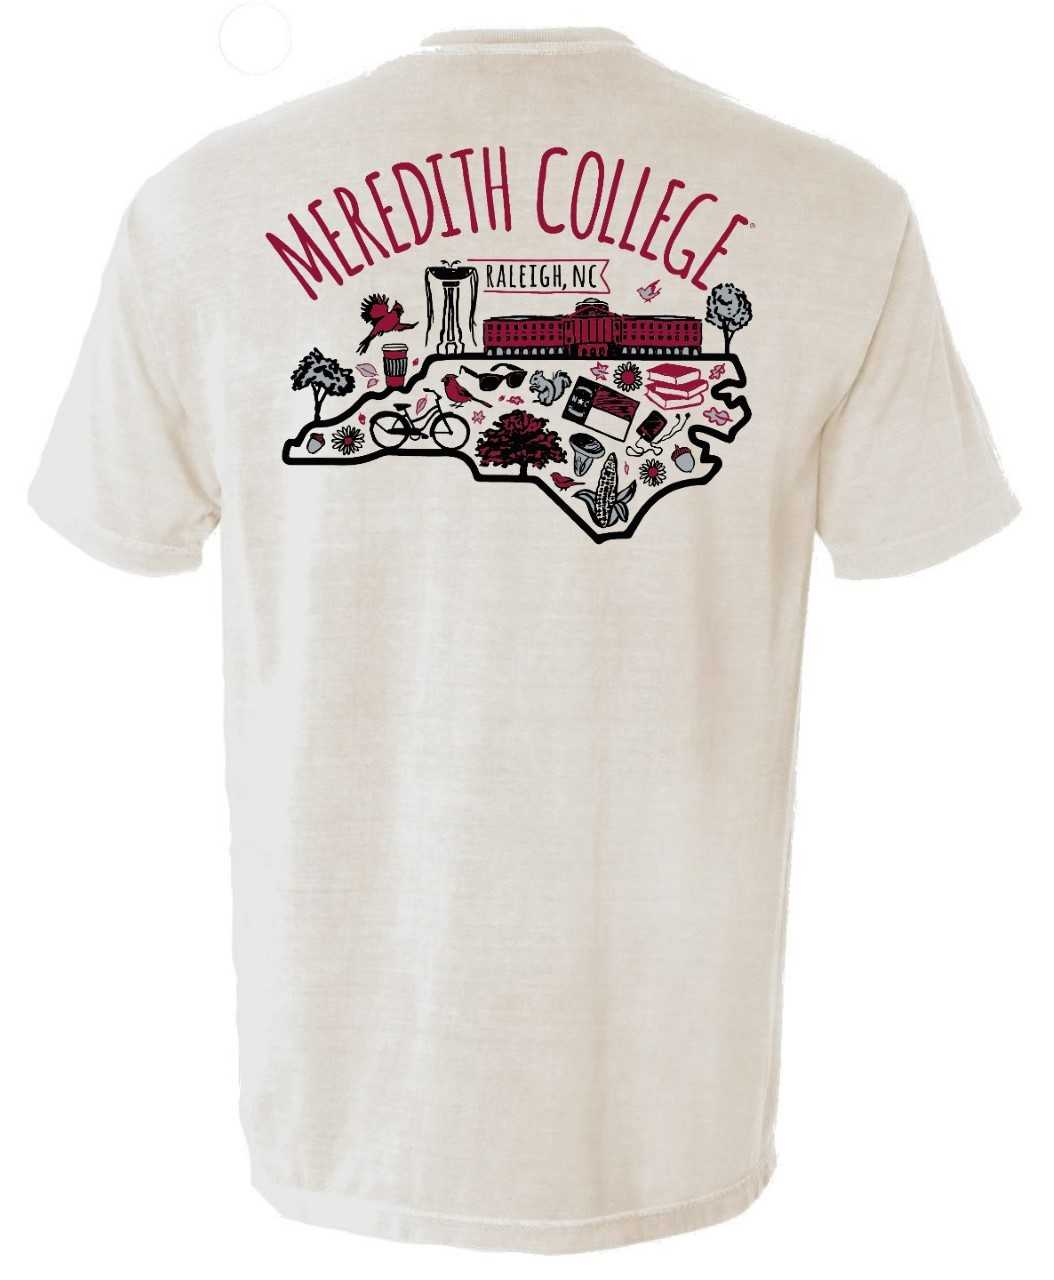 Image for the Comfort Colors T-Shirt, Ivory, Campus Life Images product